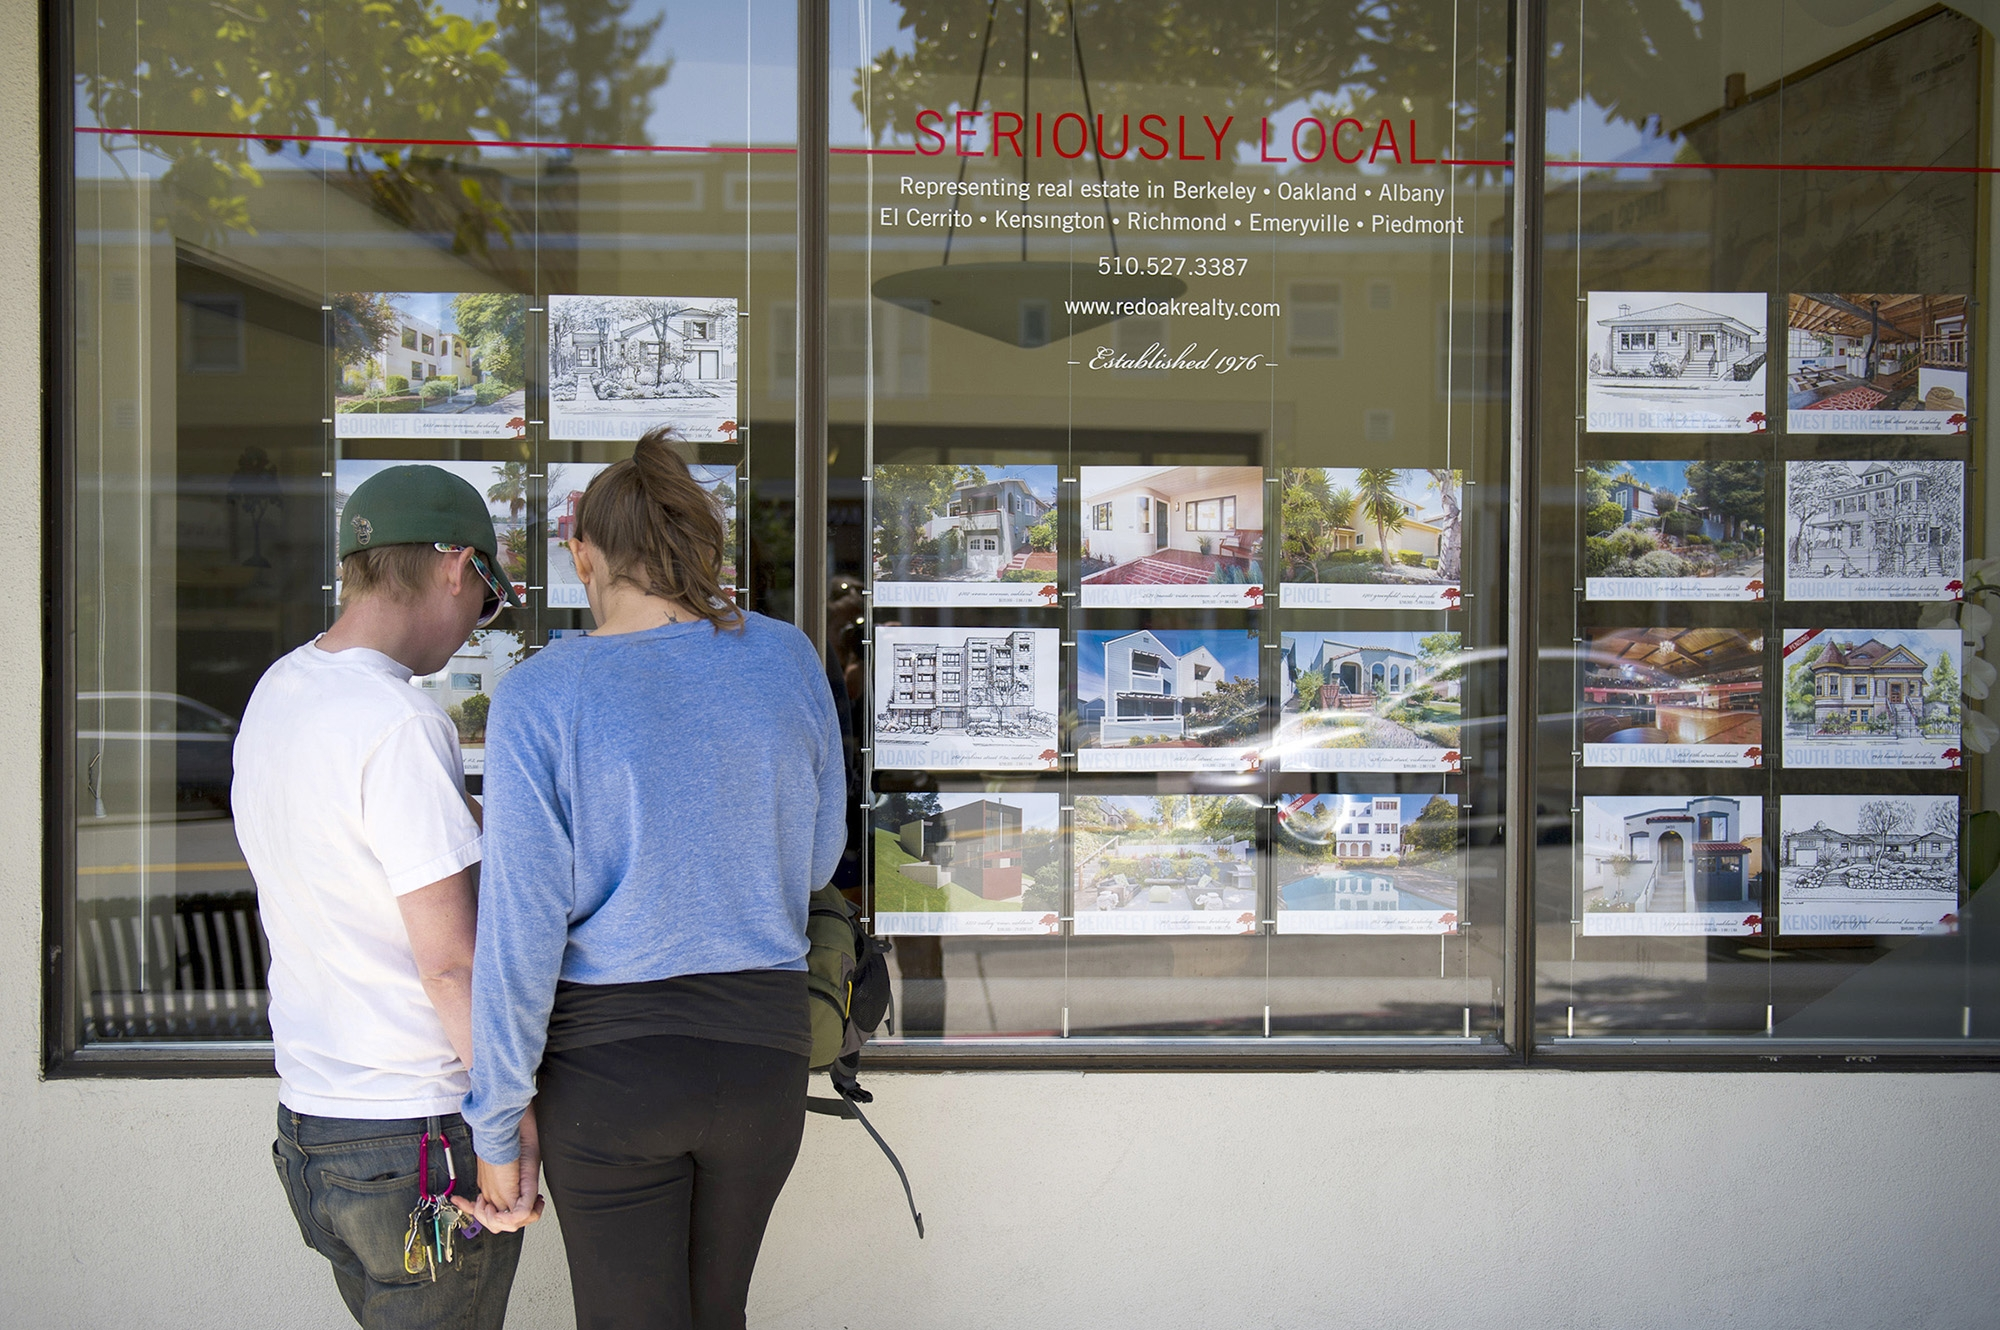 Pedestrians stop to look at fliers listing homes for sale at a Red Oak Realty office in Berkeley, Calif.